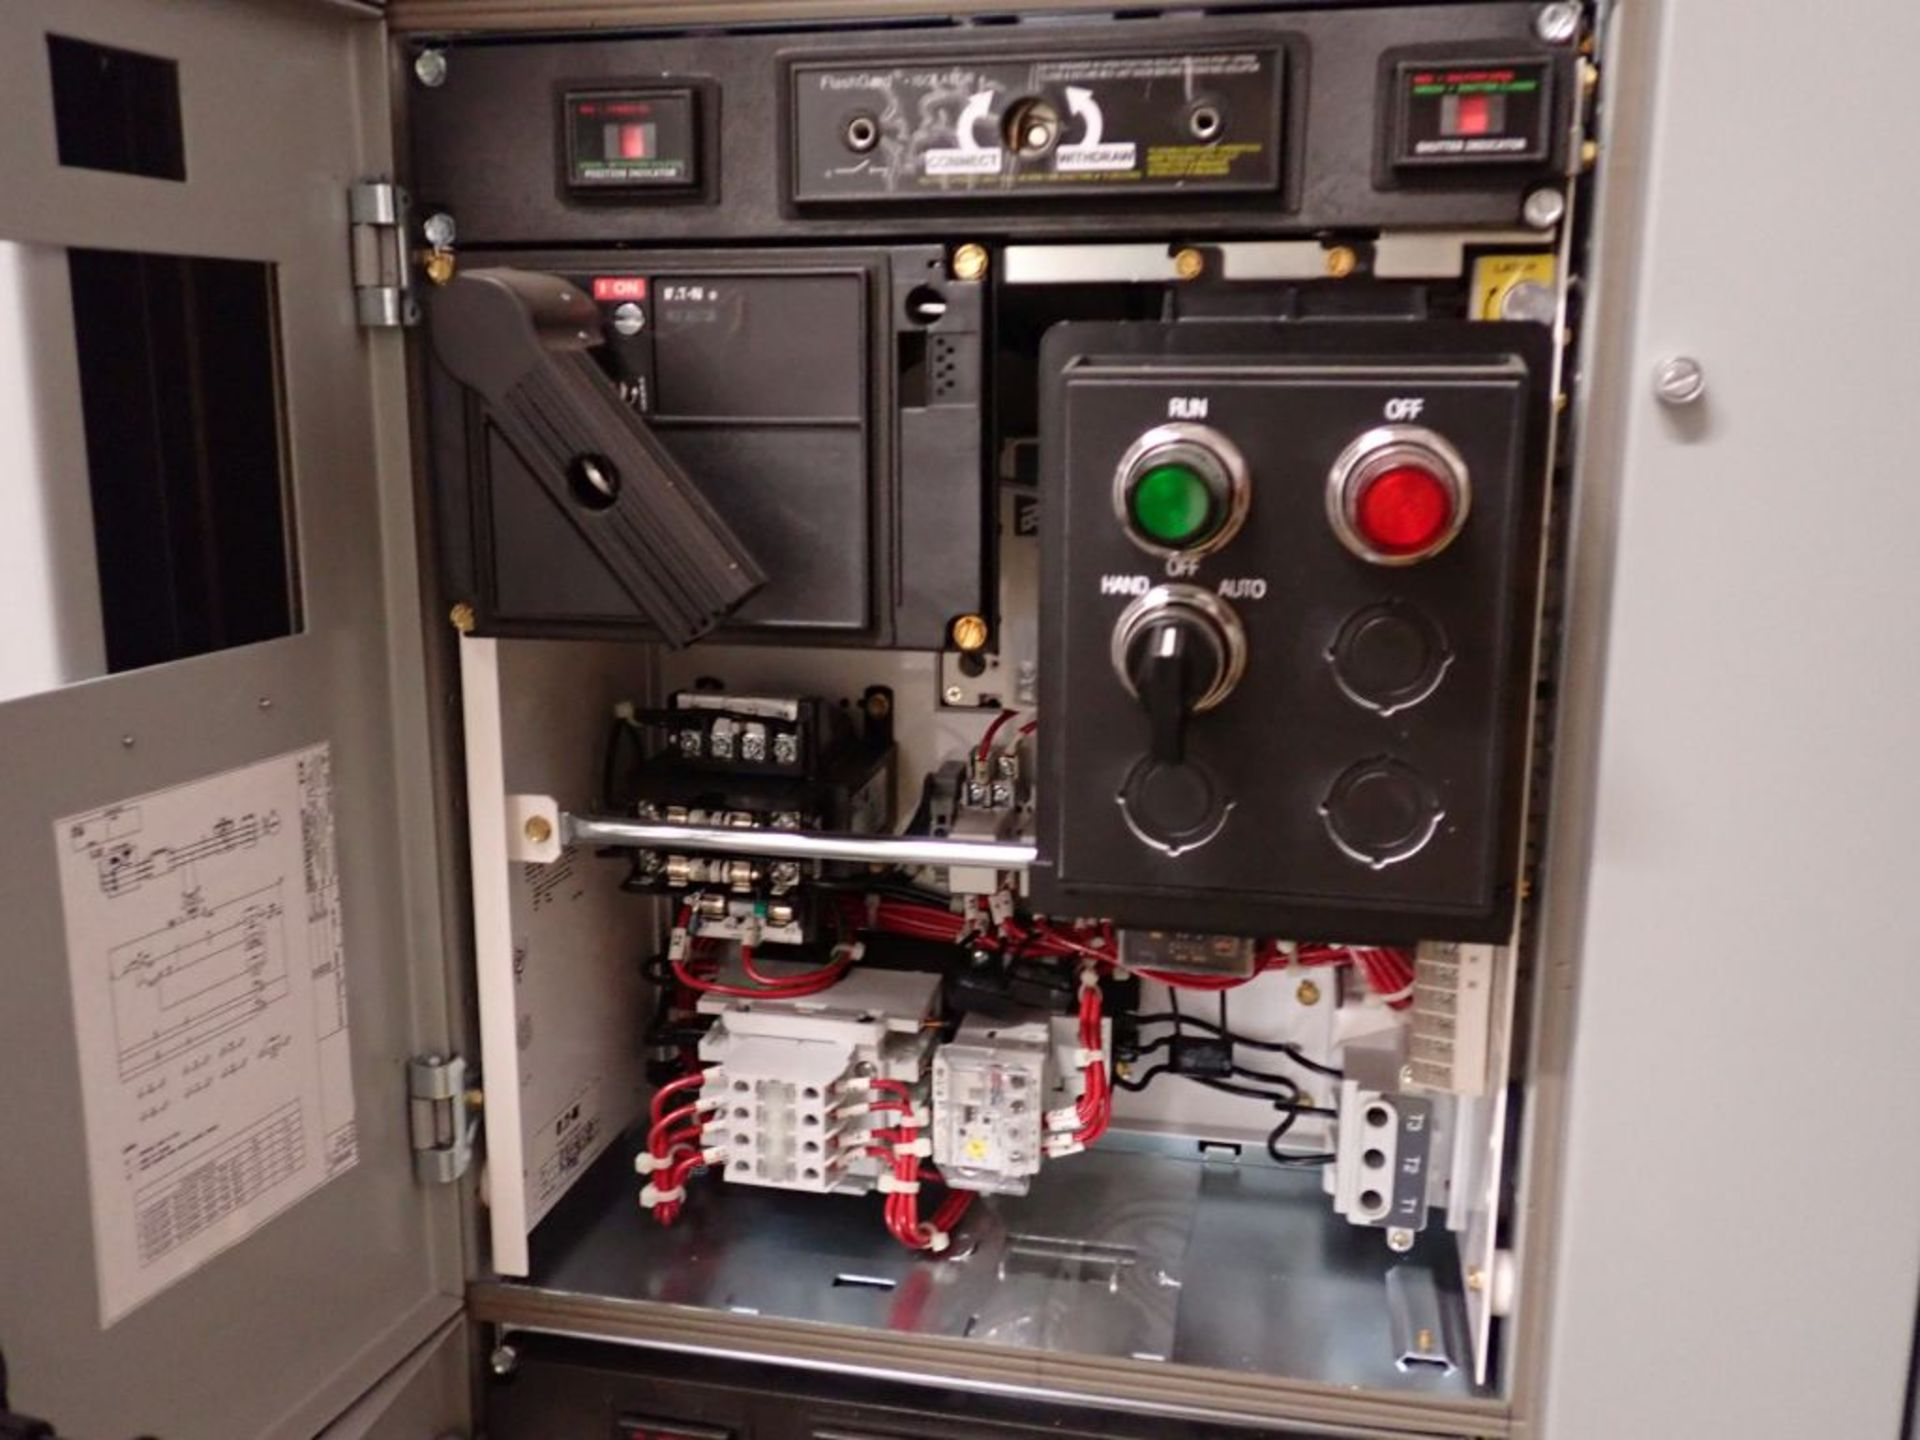 Eaton Freedom 2100 Series Motor Control Center | (11) F206-30A-10HP; (5) F206-15A-10HP; (1) SVX900- - Image 68 of 102